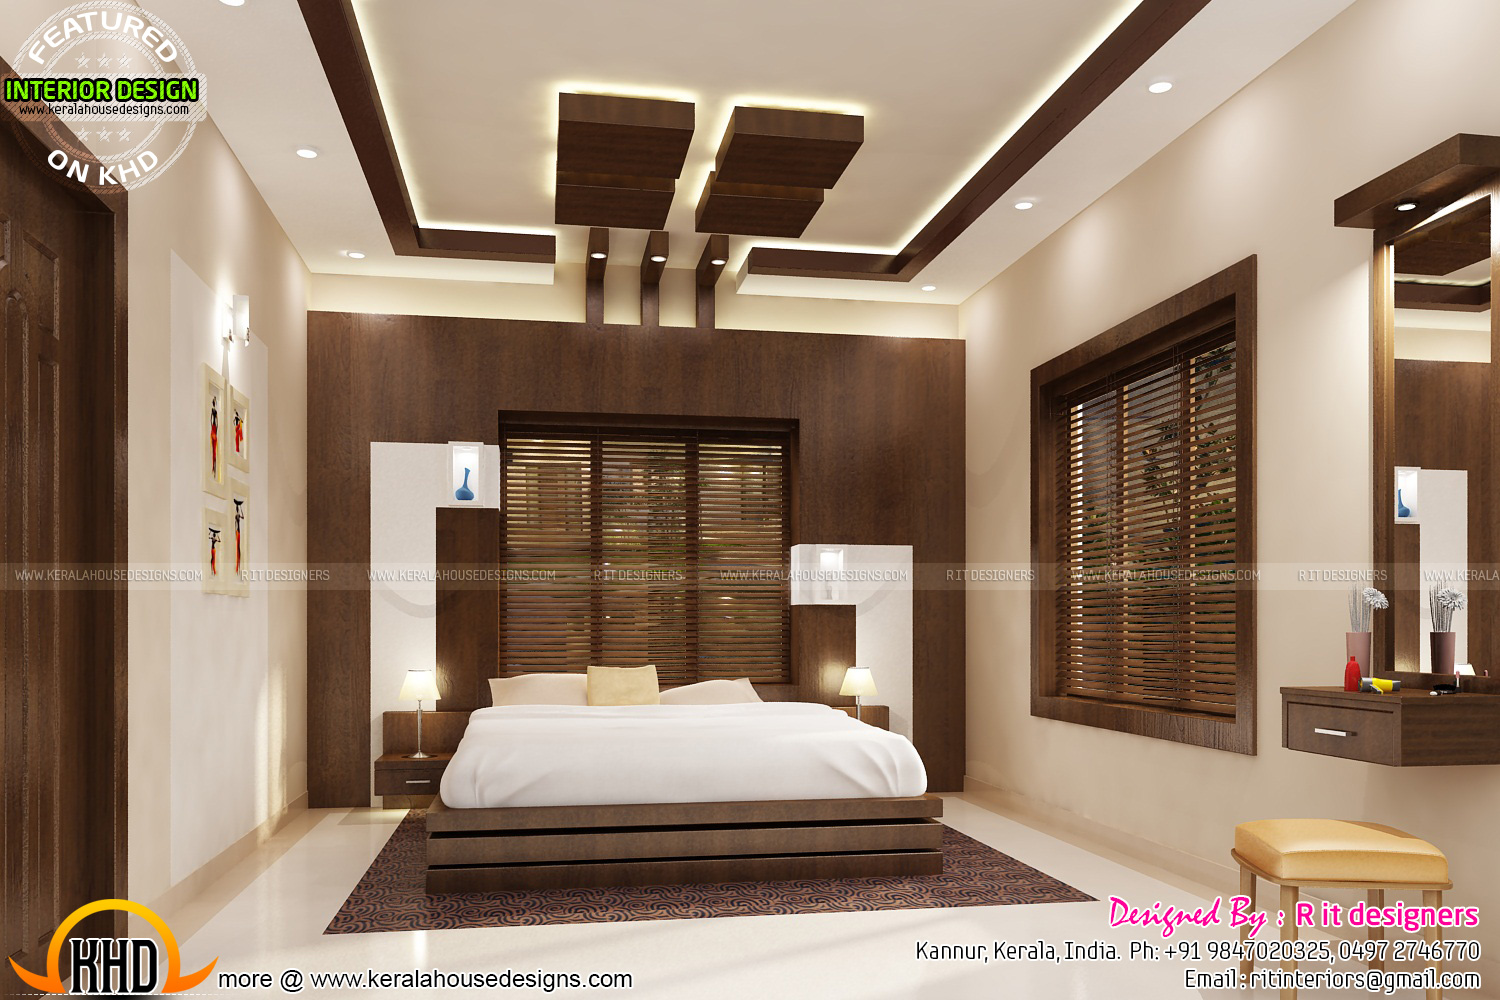 Bifurcated Stair Bedroom Kitchen Interiors Kerala Home Design And Floor Plans